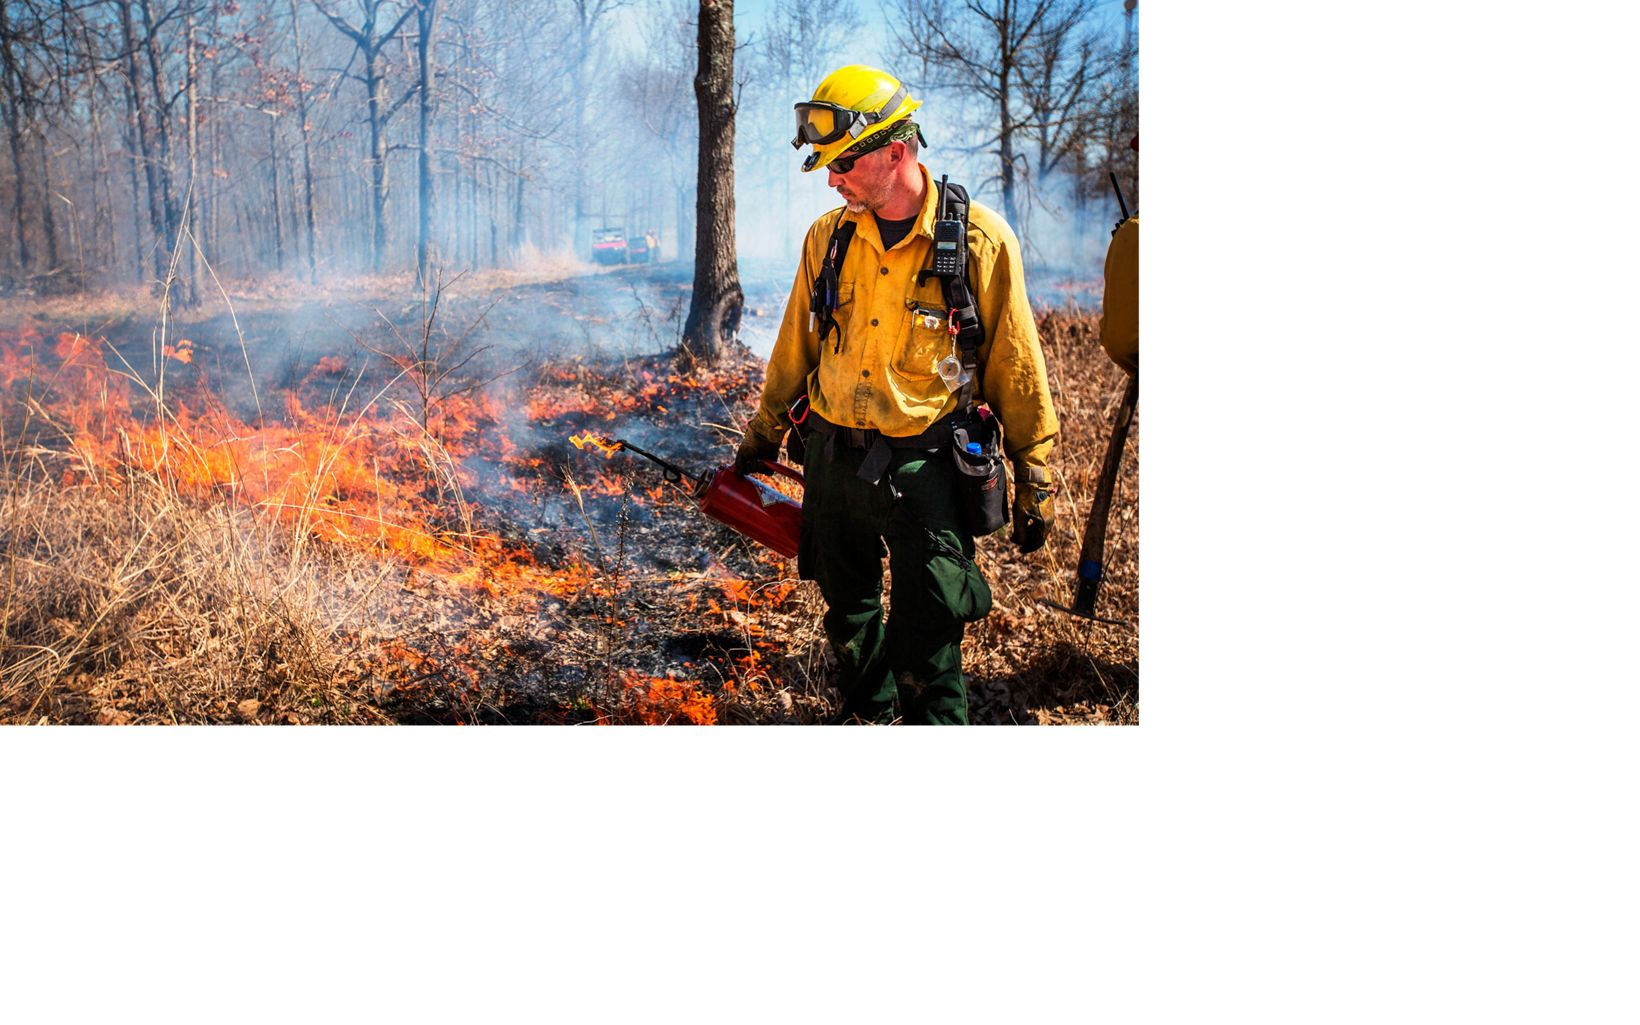 A fire worker sets a prescribed fire with a drip torch.